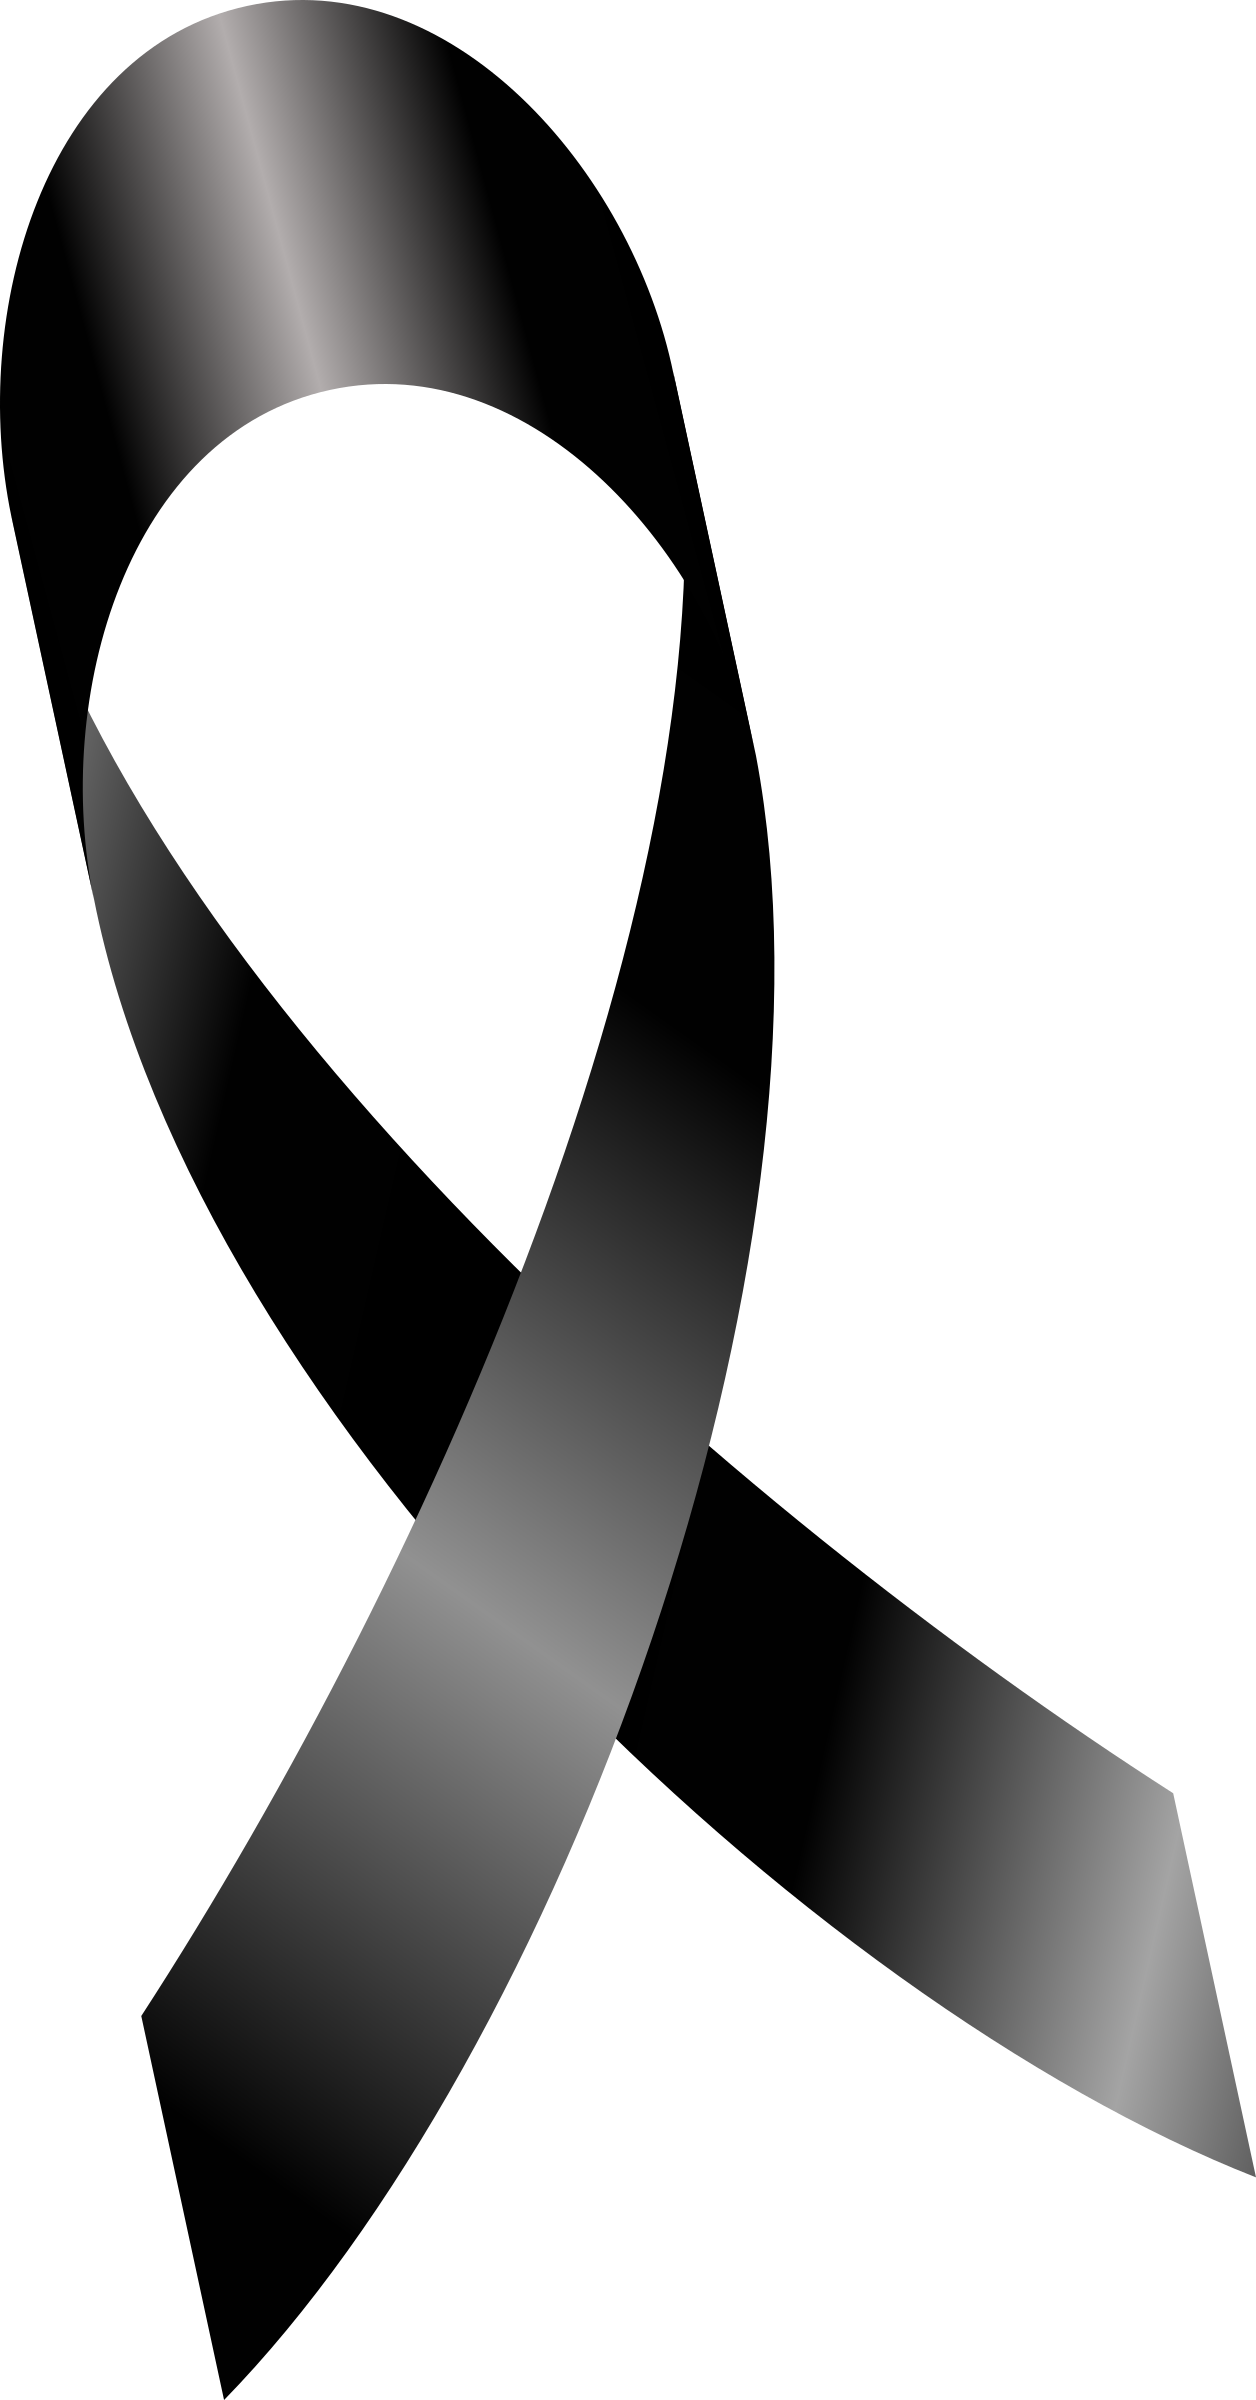 Melanoma cancer ribbon, mourning ribbon, Luto by leangoro